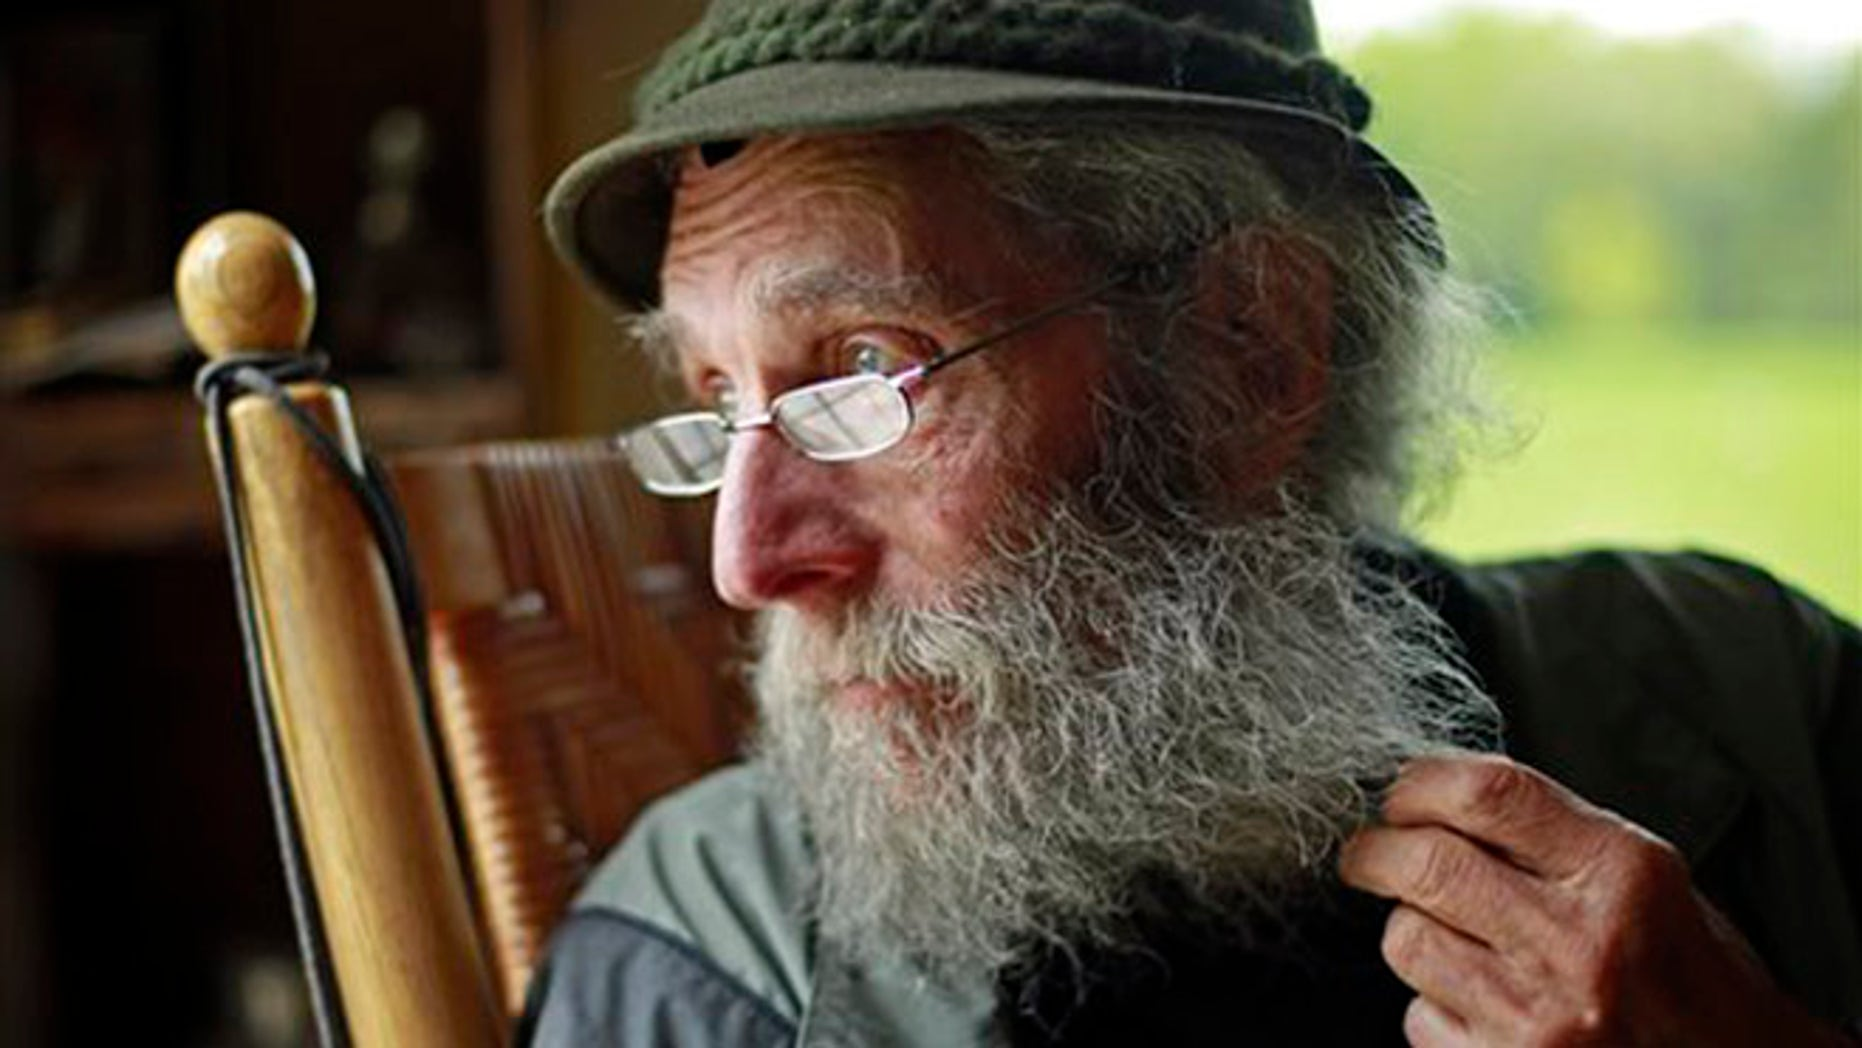 FILE- In May 23, 2014, file photo, Burt Shavitz pauses during an interview to watch a litter of fox kits play near his camp in Parkman, Maine. Shavitz, a former beekeeper, is the Burt behind Burt's Bees. A spokeswoman for Burts Bees said Shavtiz died Sunday, July 5, 2015, at his home in rural Maine. He was 80. (AP Photo/Robert F. Bukaty, File)